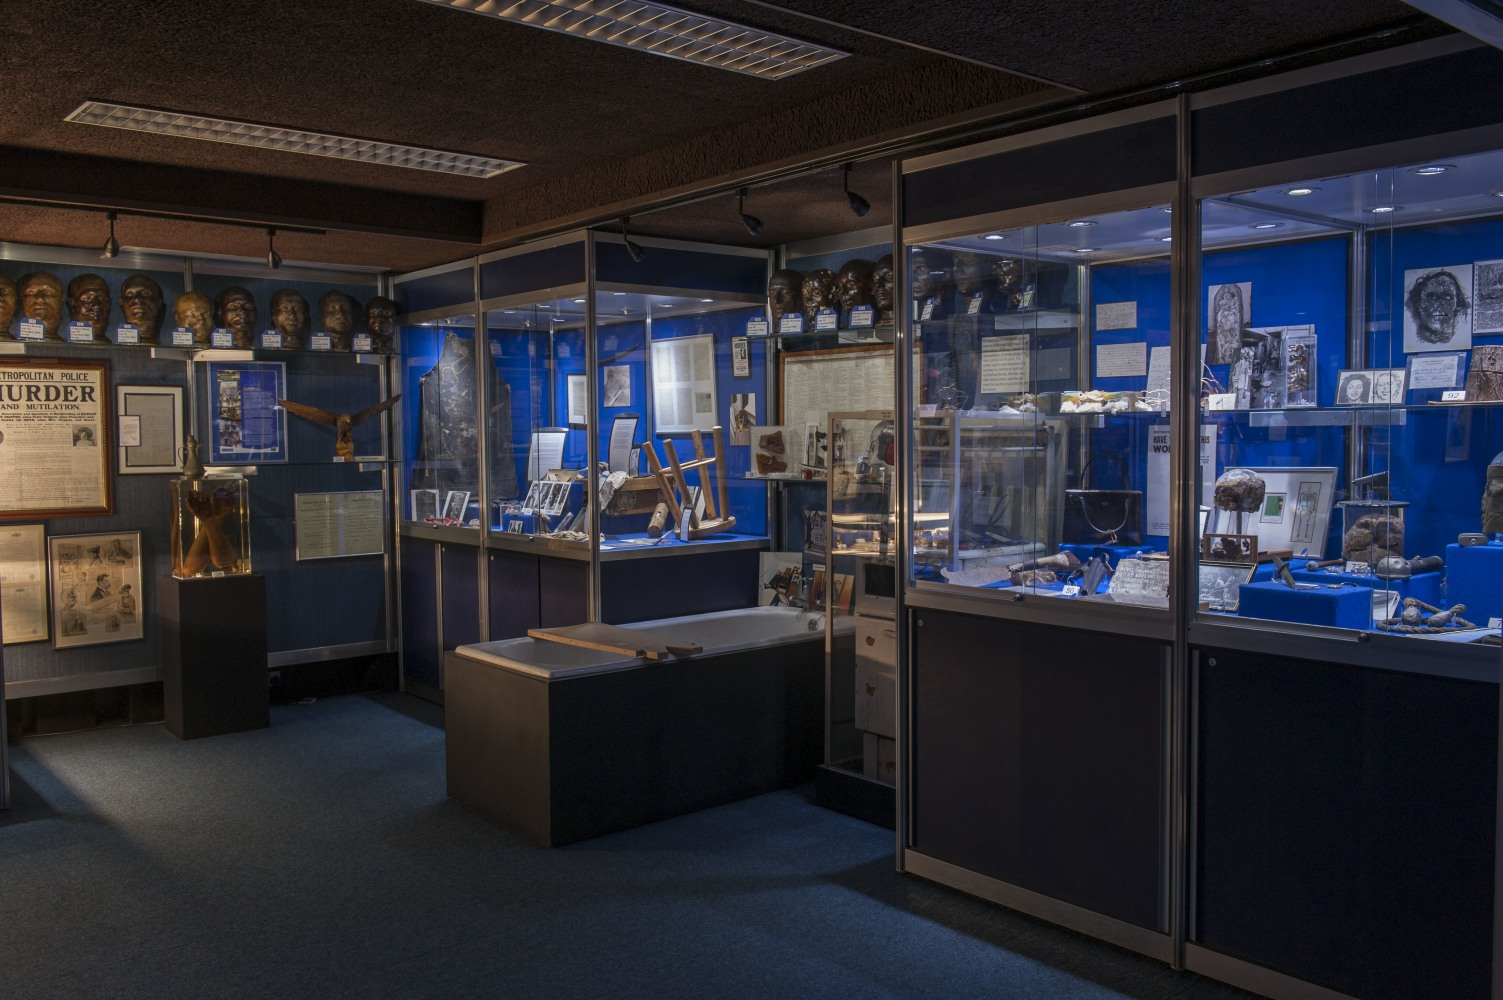 The Museums (in alphabetical order) City of London Police Museum A small but fascinating museum housed in the City of London Police Headquarters that chronicles the history of crime and policing in the City of London from the s (when the force was founded) to the present day.